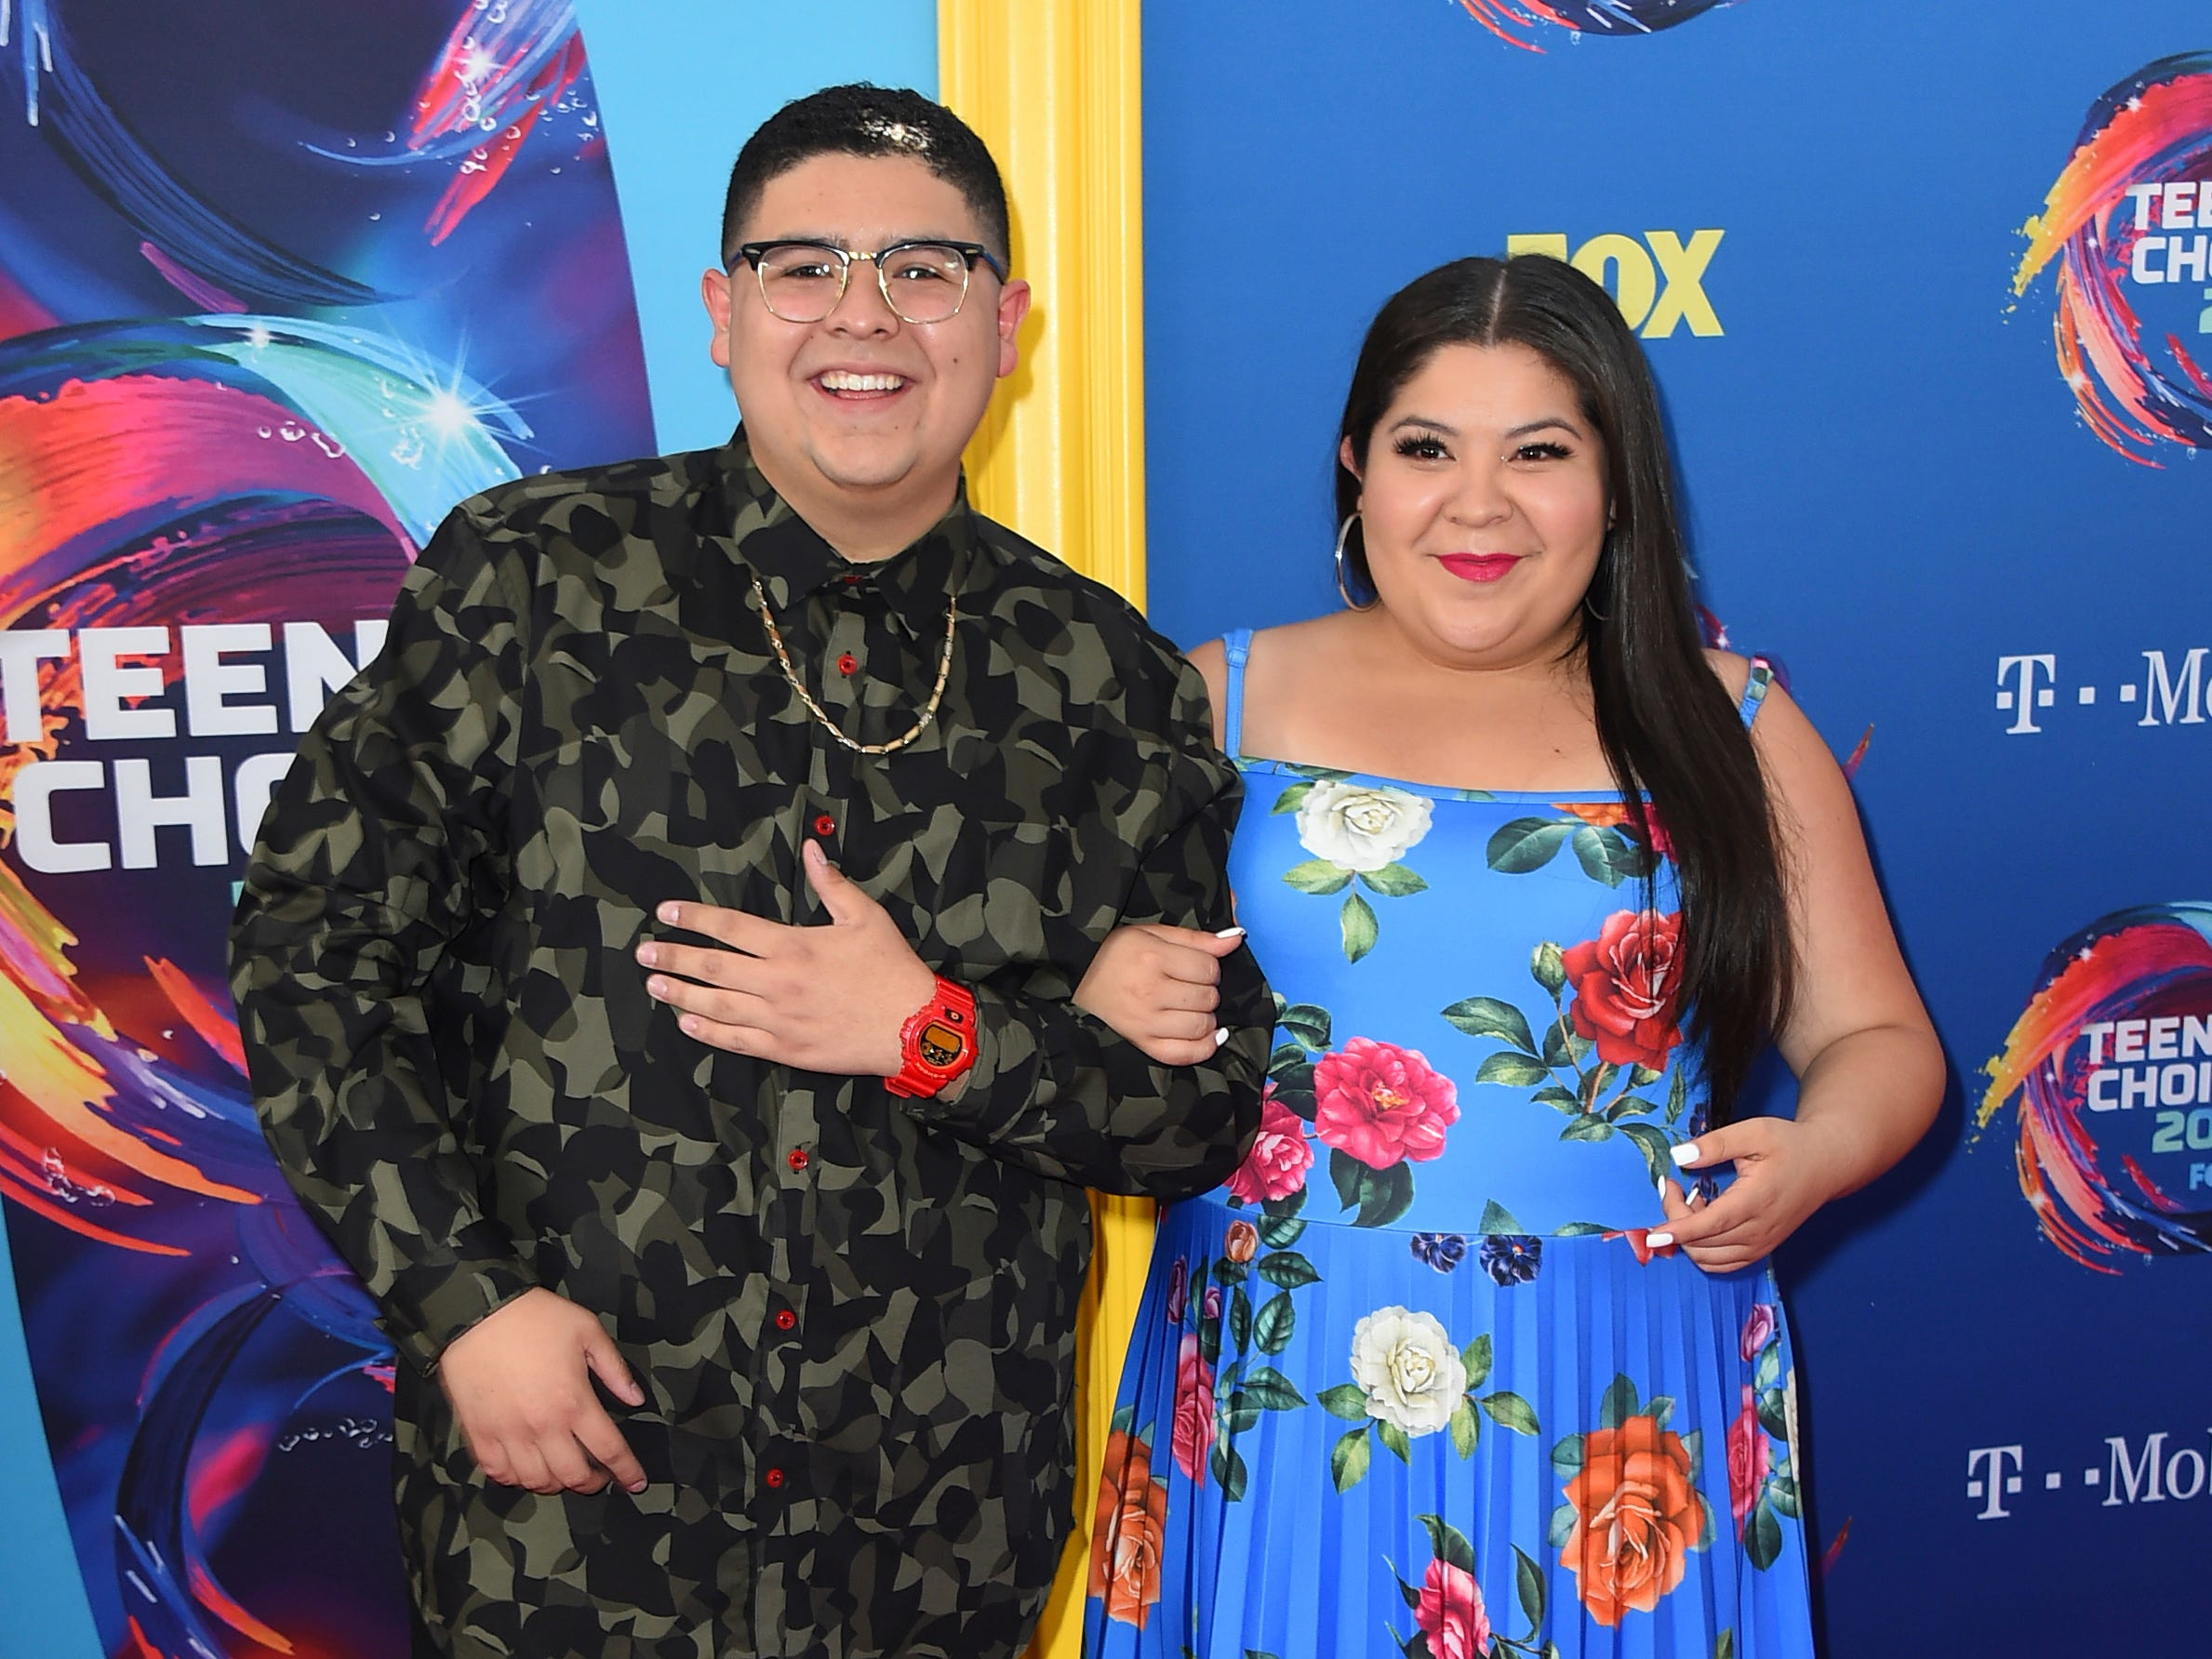 Rico Rodriguez, left, and Raini Rodriguez arrive at the Teen Choice Awards at The Forum on Sunday, Aug. 12, 2018, in Inglewood, Calif. (Photo by Jordan Strauss/Invision/AP) ORG XMIT: CAPM120